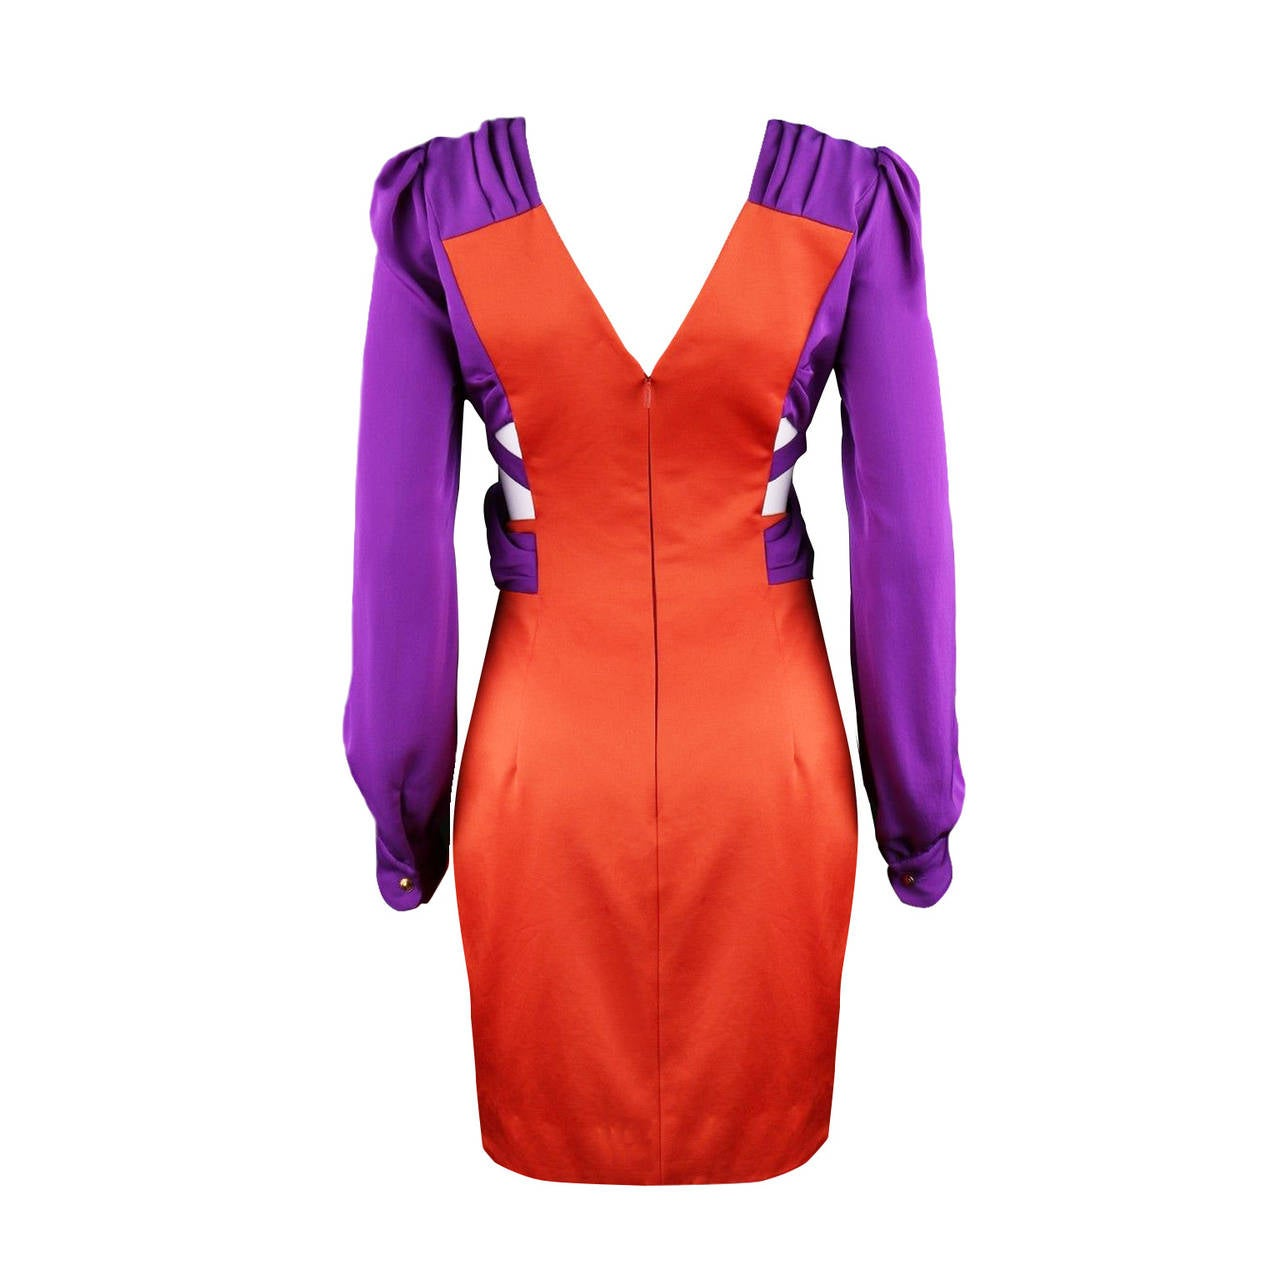 Gucci purple orange colour block cut out dress from spring / summer 2011. This Iconic dress was worn by Lara Stone, Jennifer Lawrence and numerous celebrities, featured on cover magazines such as Vogue, Marie Clair, Harpers Bazaar. Original size :